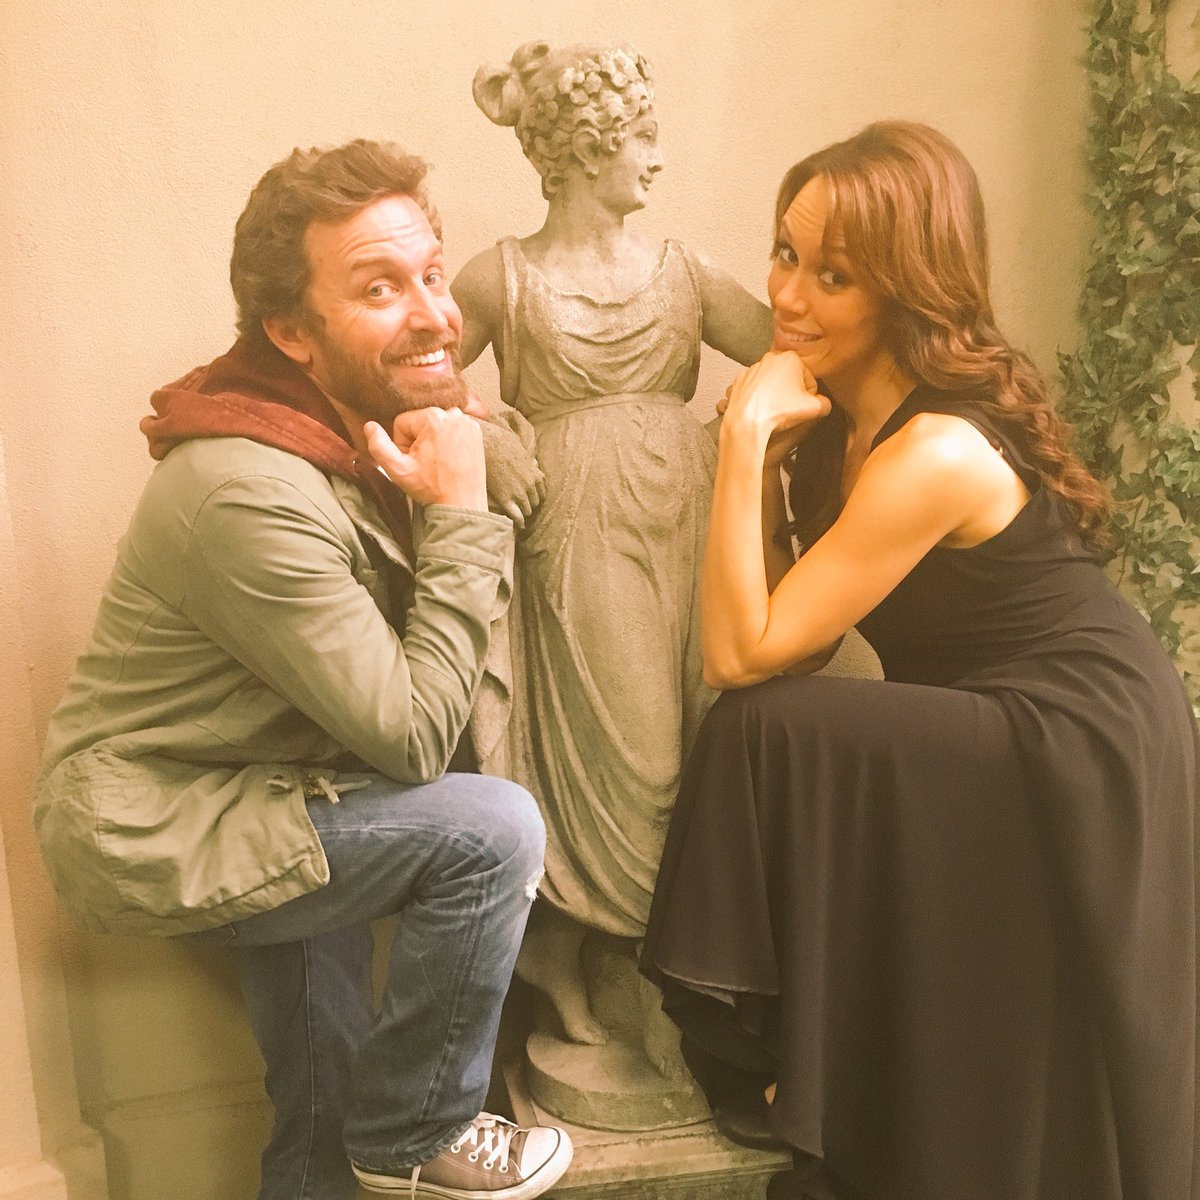 More awkward family photos with my tv sis @bigEswallz #SupernaturalFinale https://t.co/Lg7cWmsSZt